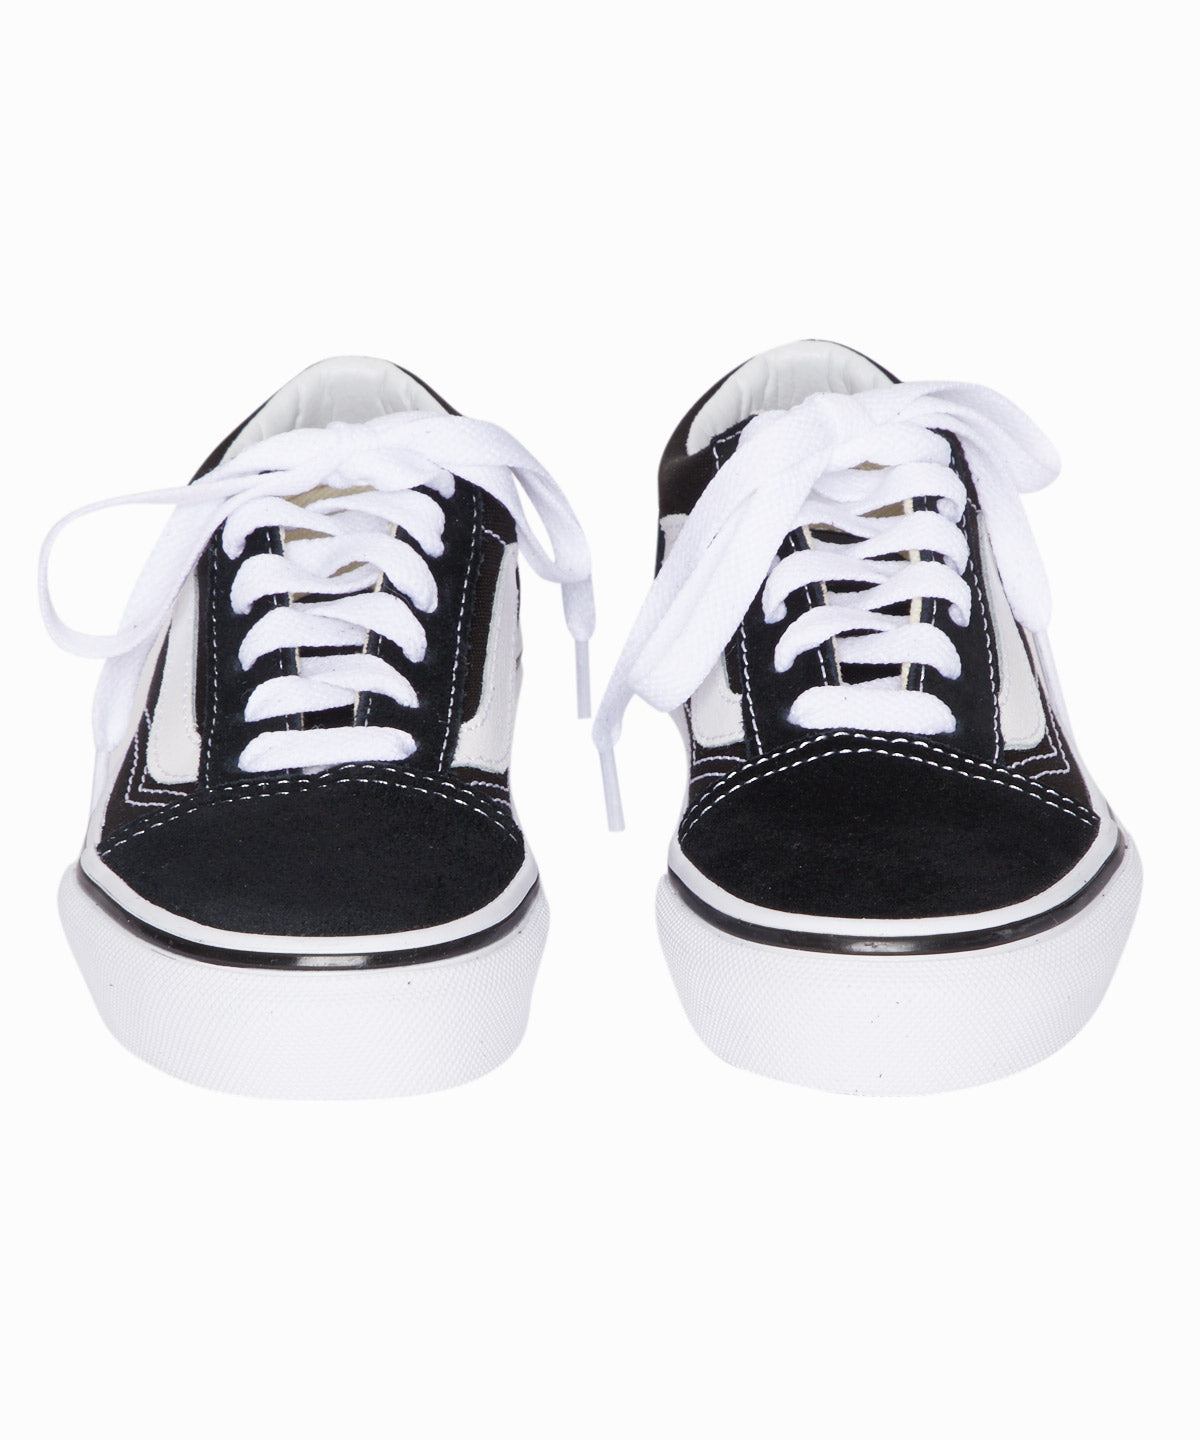 Old Skool Lace-Up Sneakers